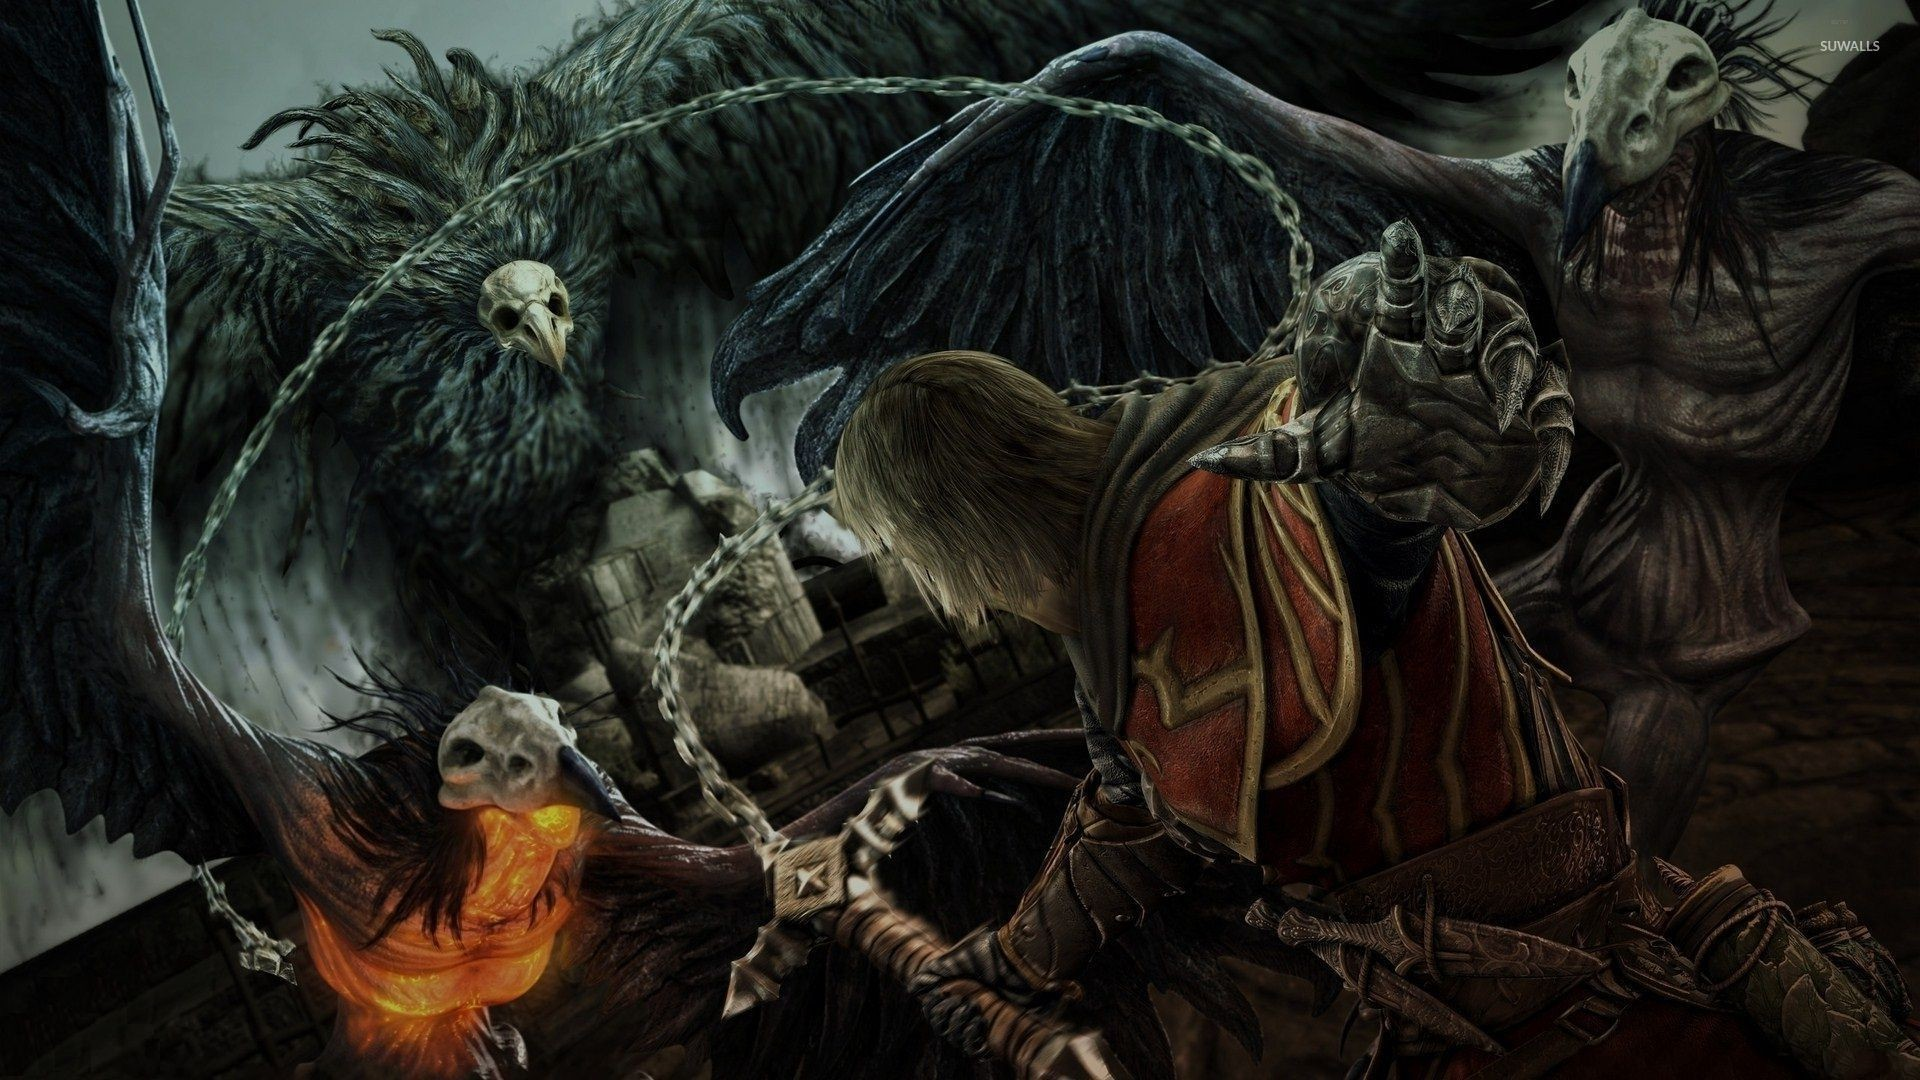 Res: 1920x1080, Castlevania: Lords Of Shadow HD Wallpapers 26 - 1920 X 1080